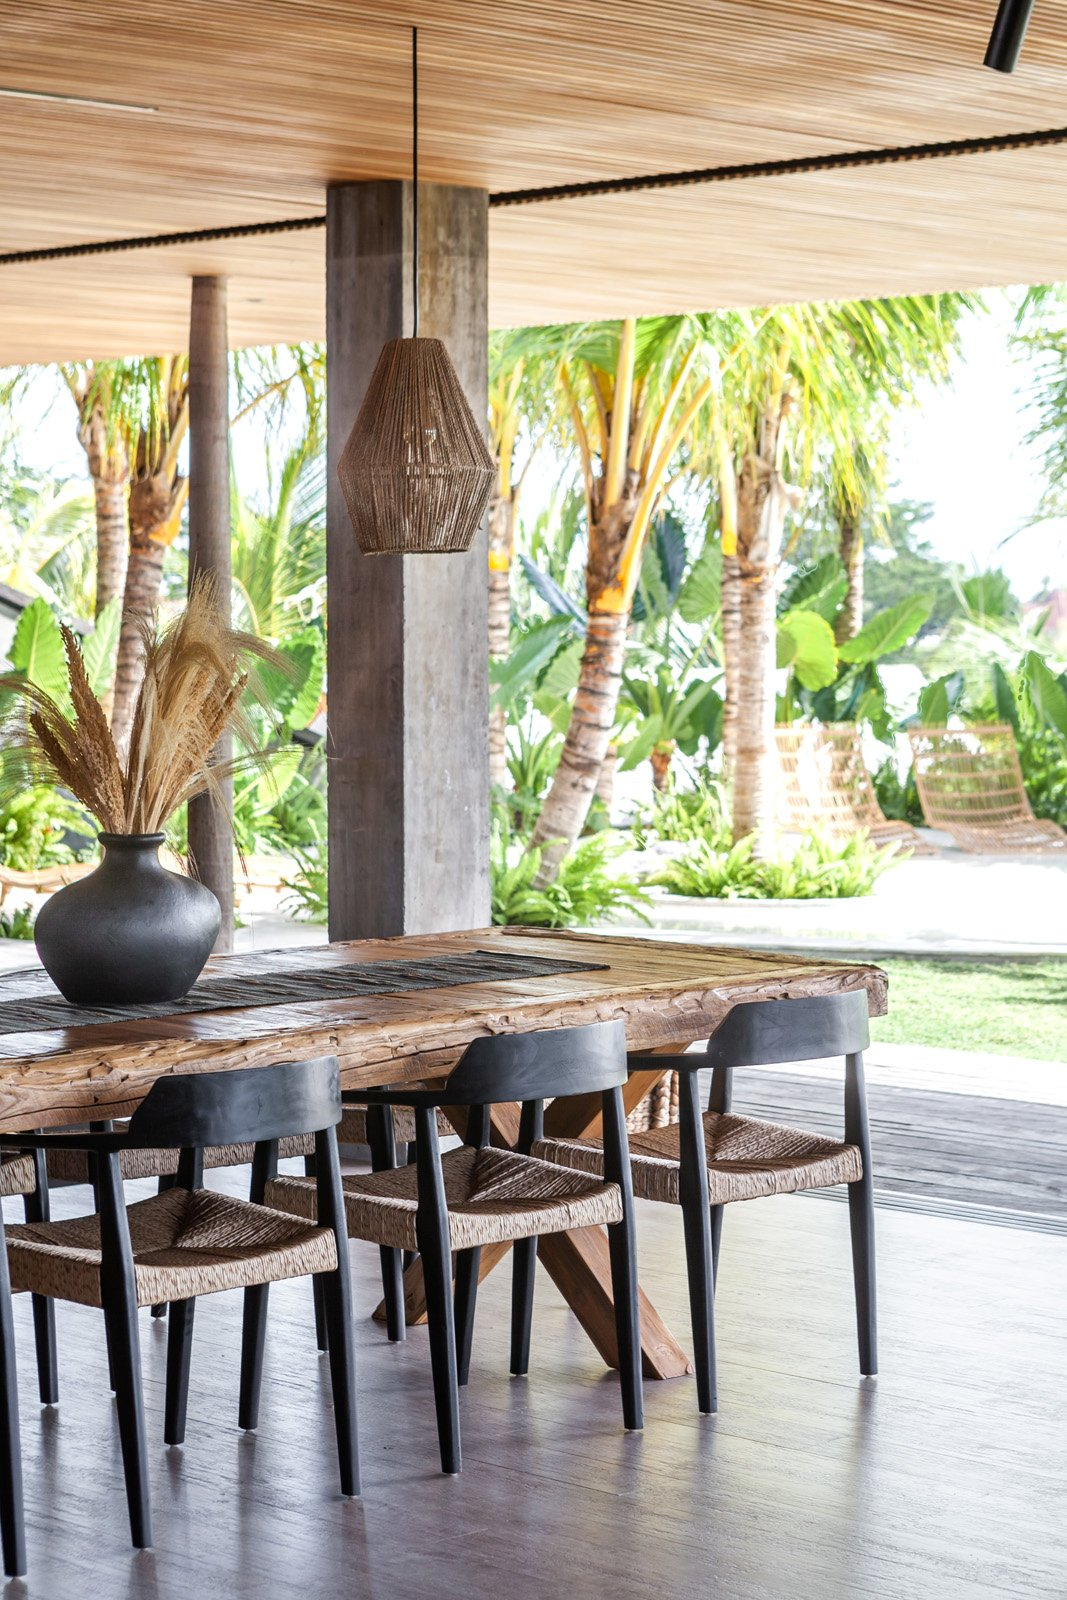 Bali Interiors- Cala Saona Biombo Architects- homes- decor-holiday-architecture